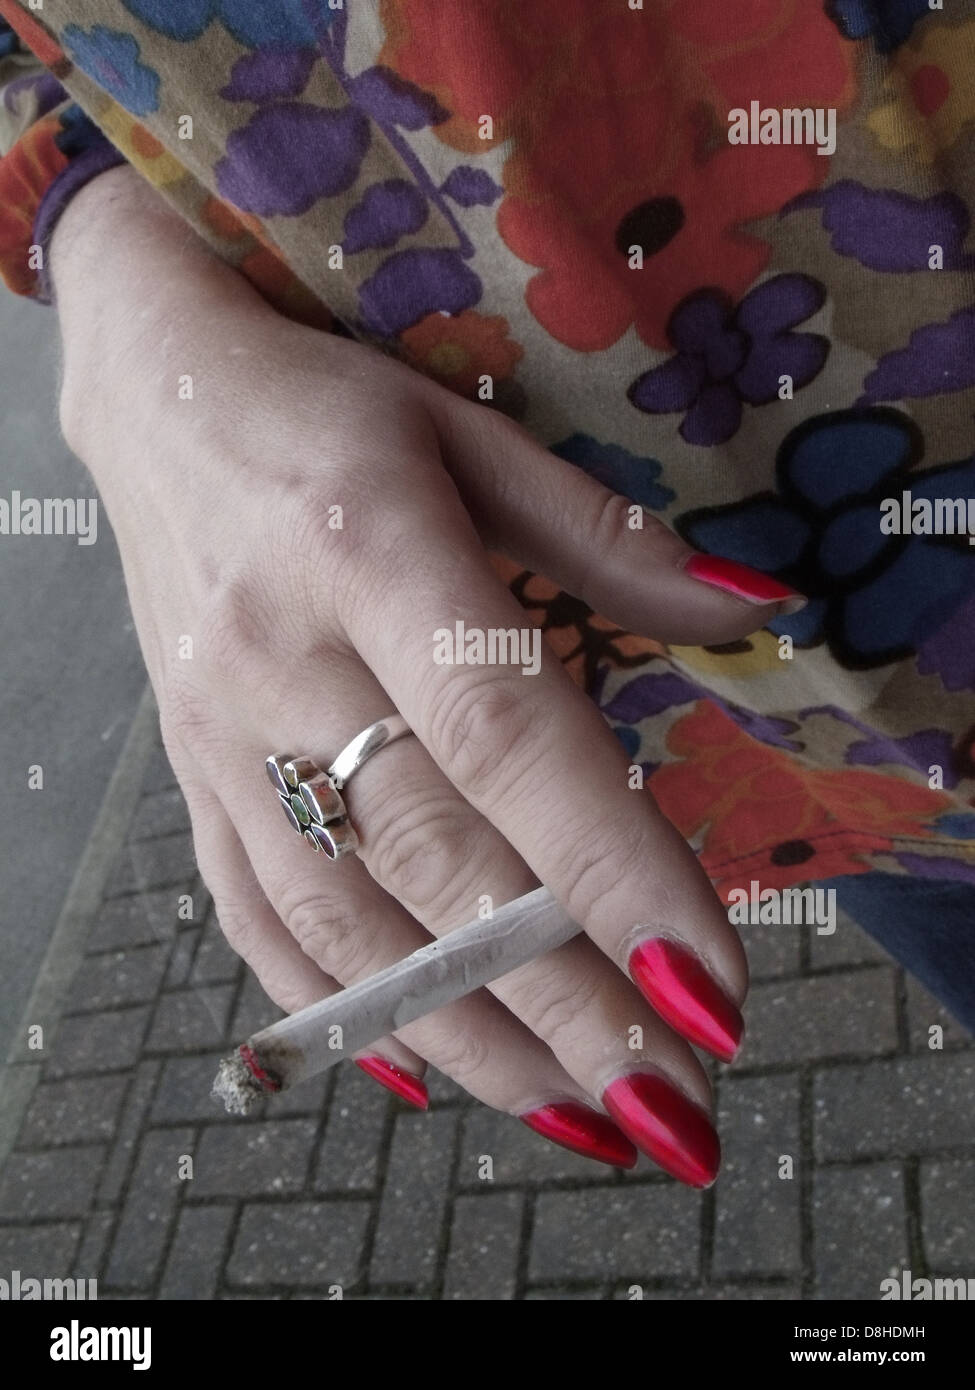 Lady smoker holding a home-made roll up, smoking outside a building in England ,UK where a smoking ban in public - Stock Image